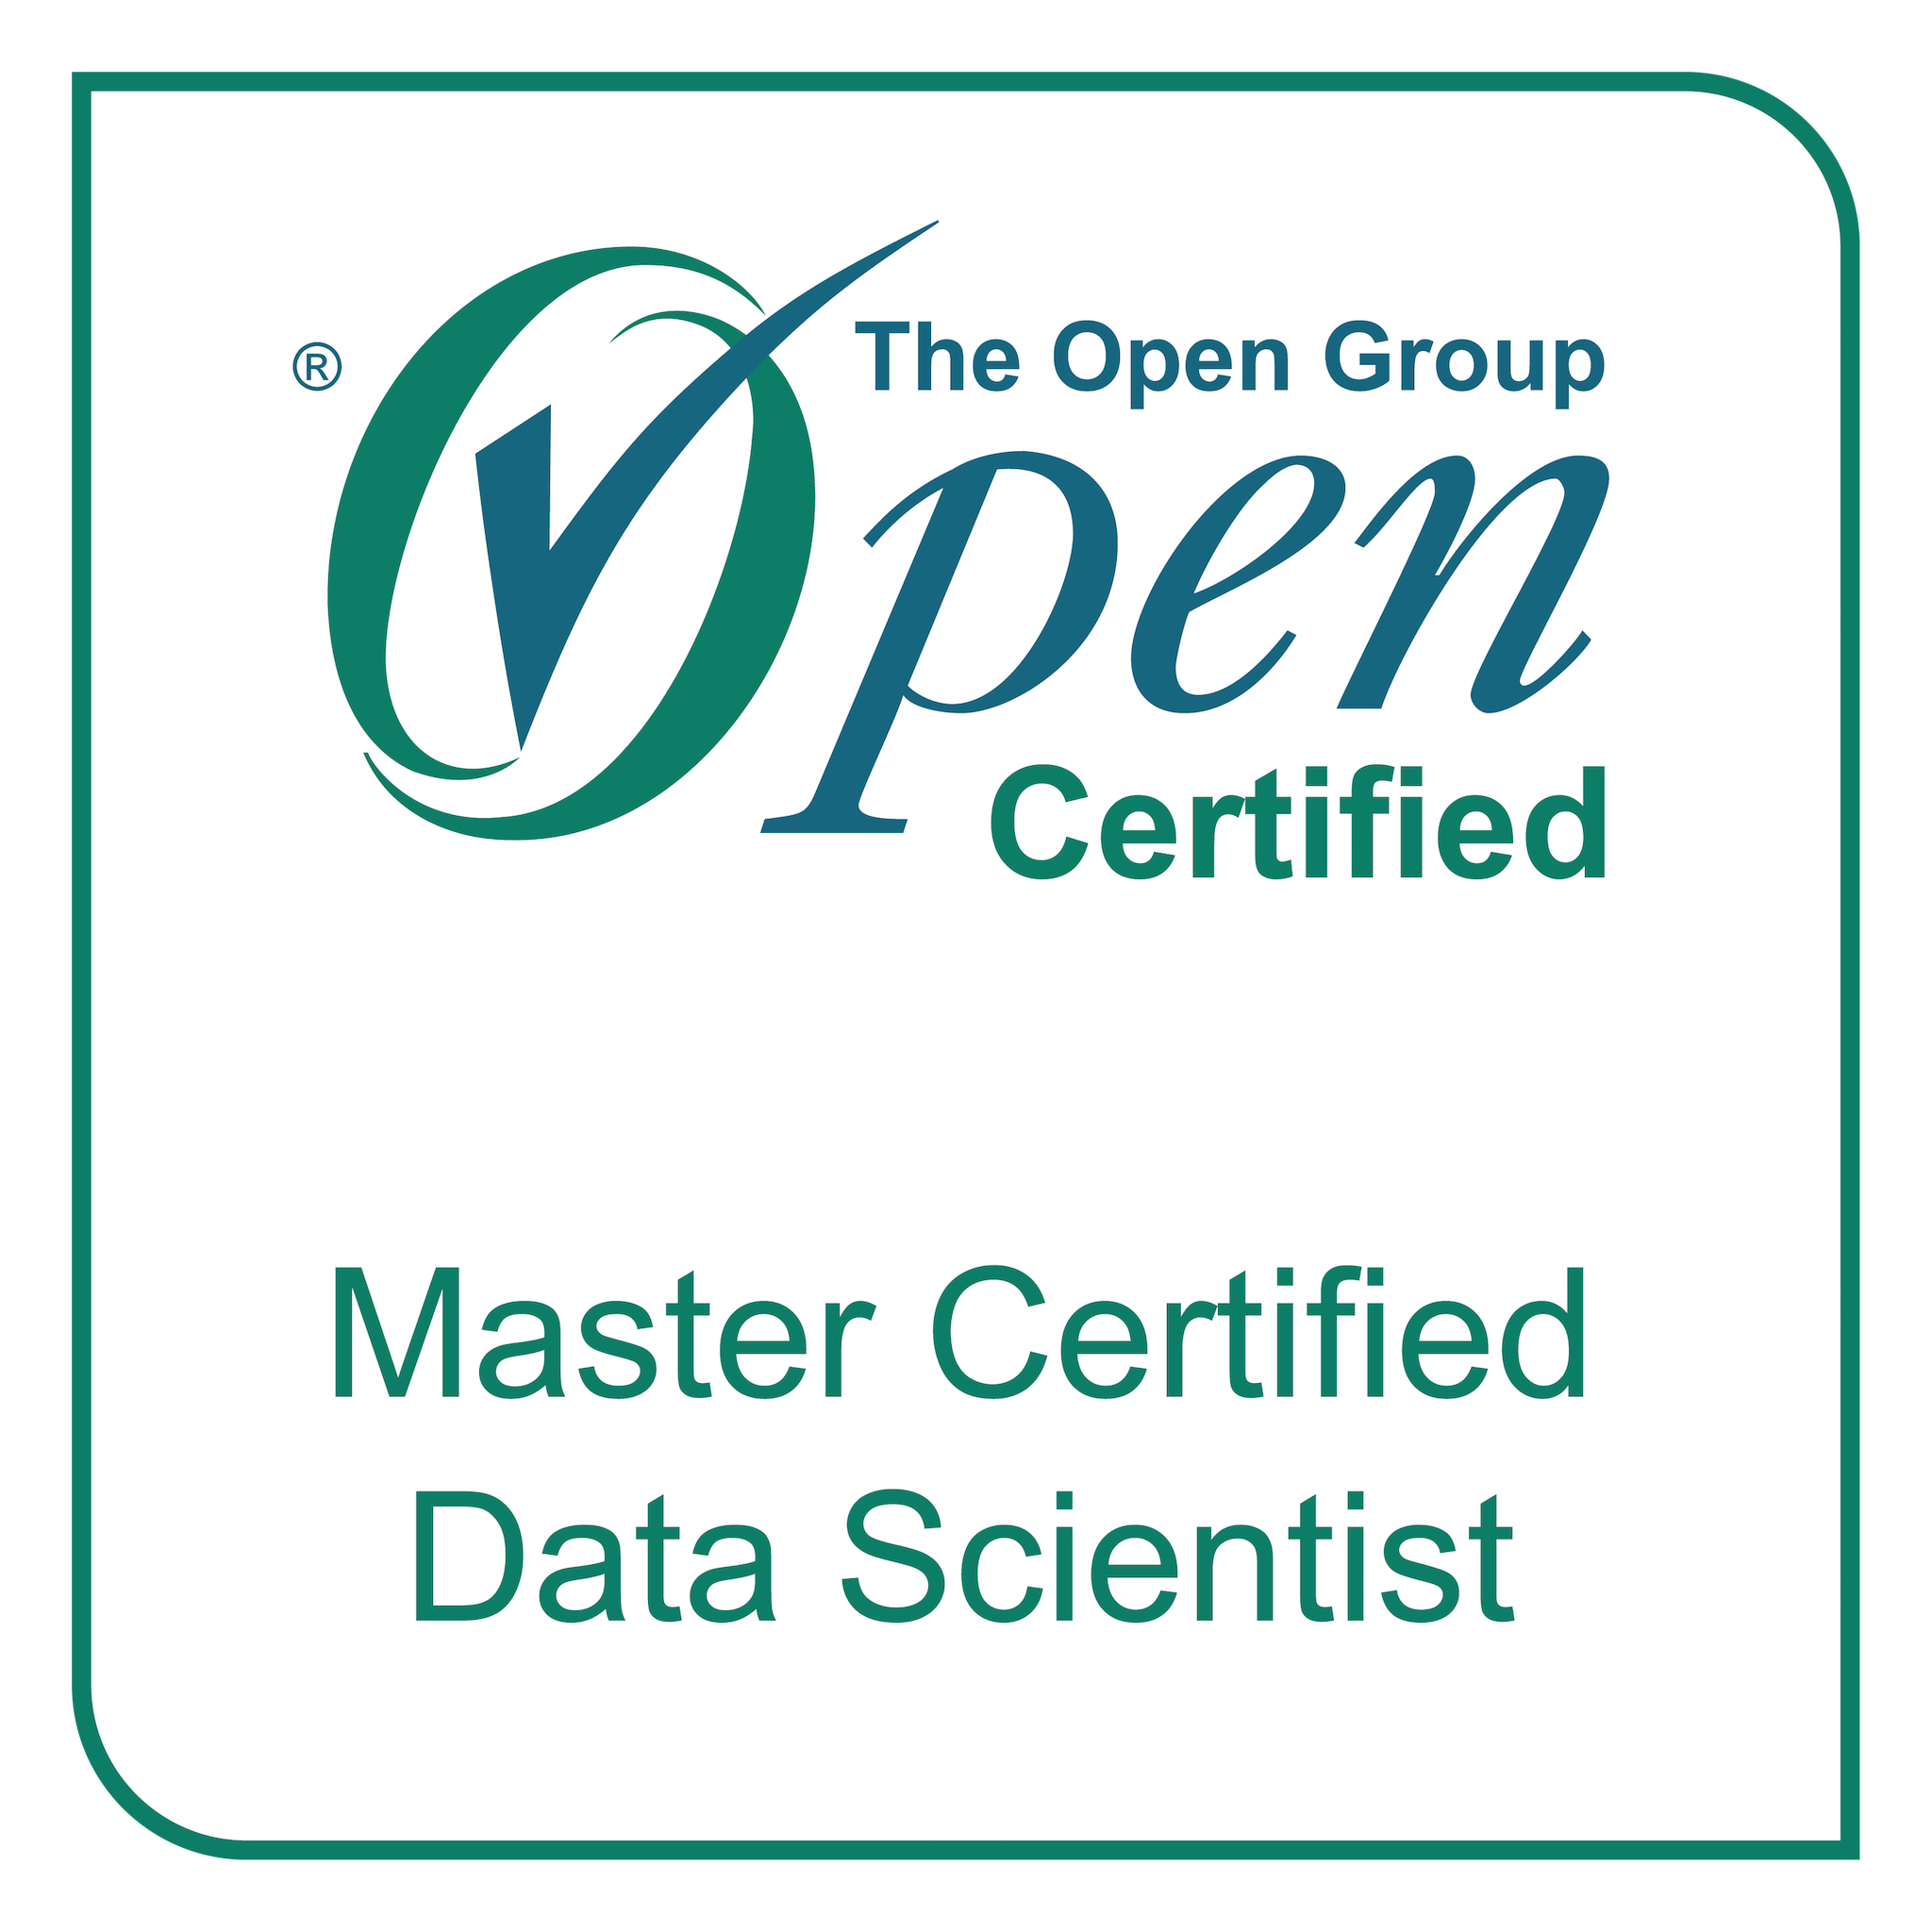 Professional Certification: Level 2 - Master Certified Data Scientist